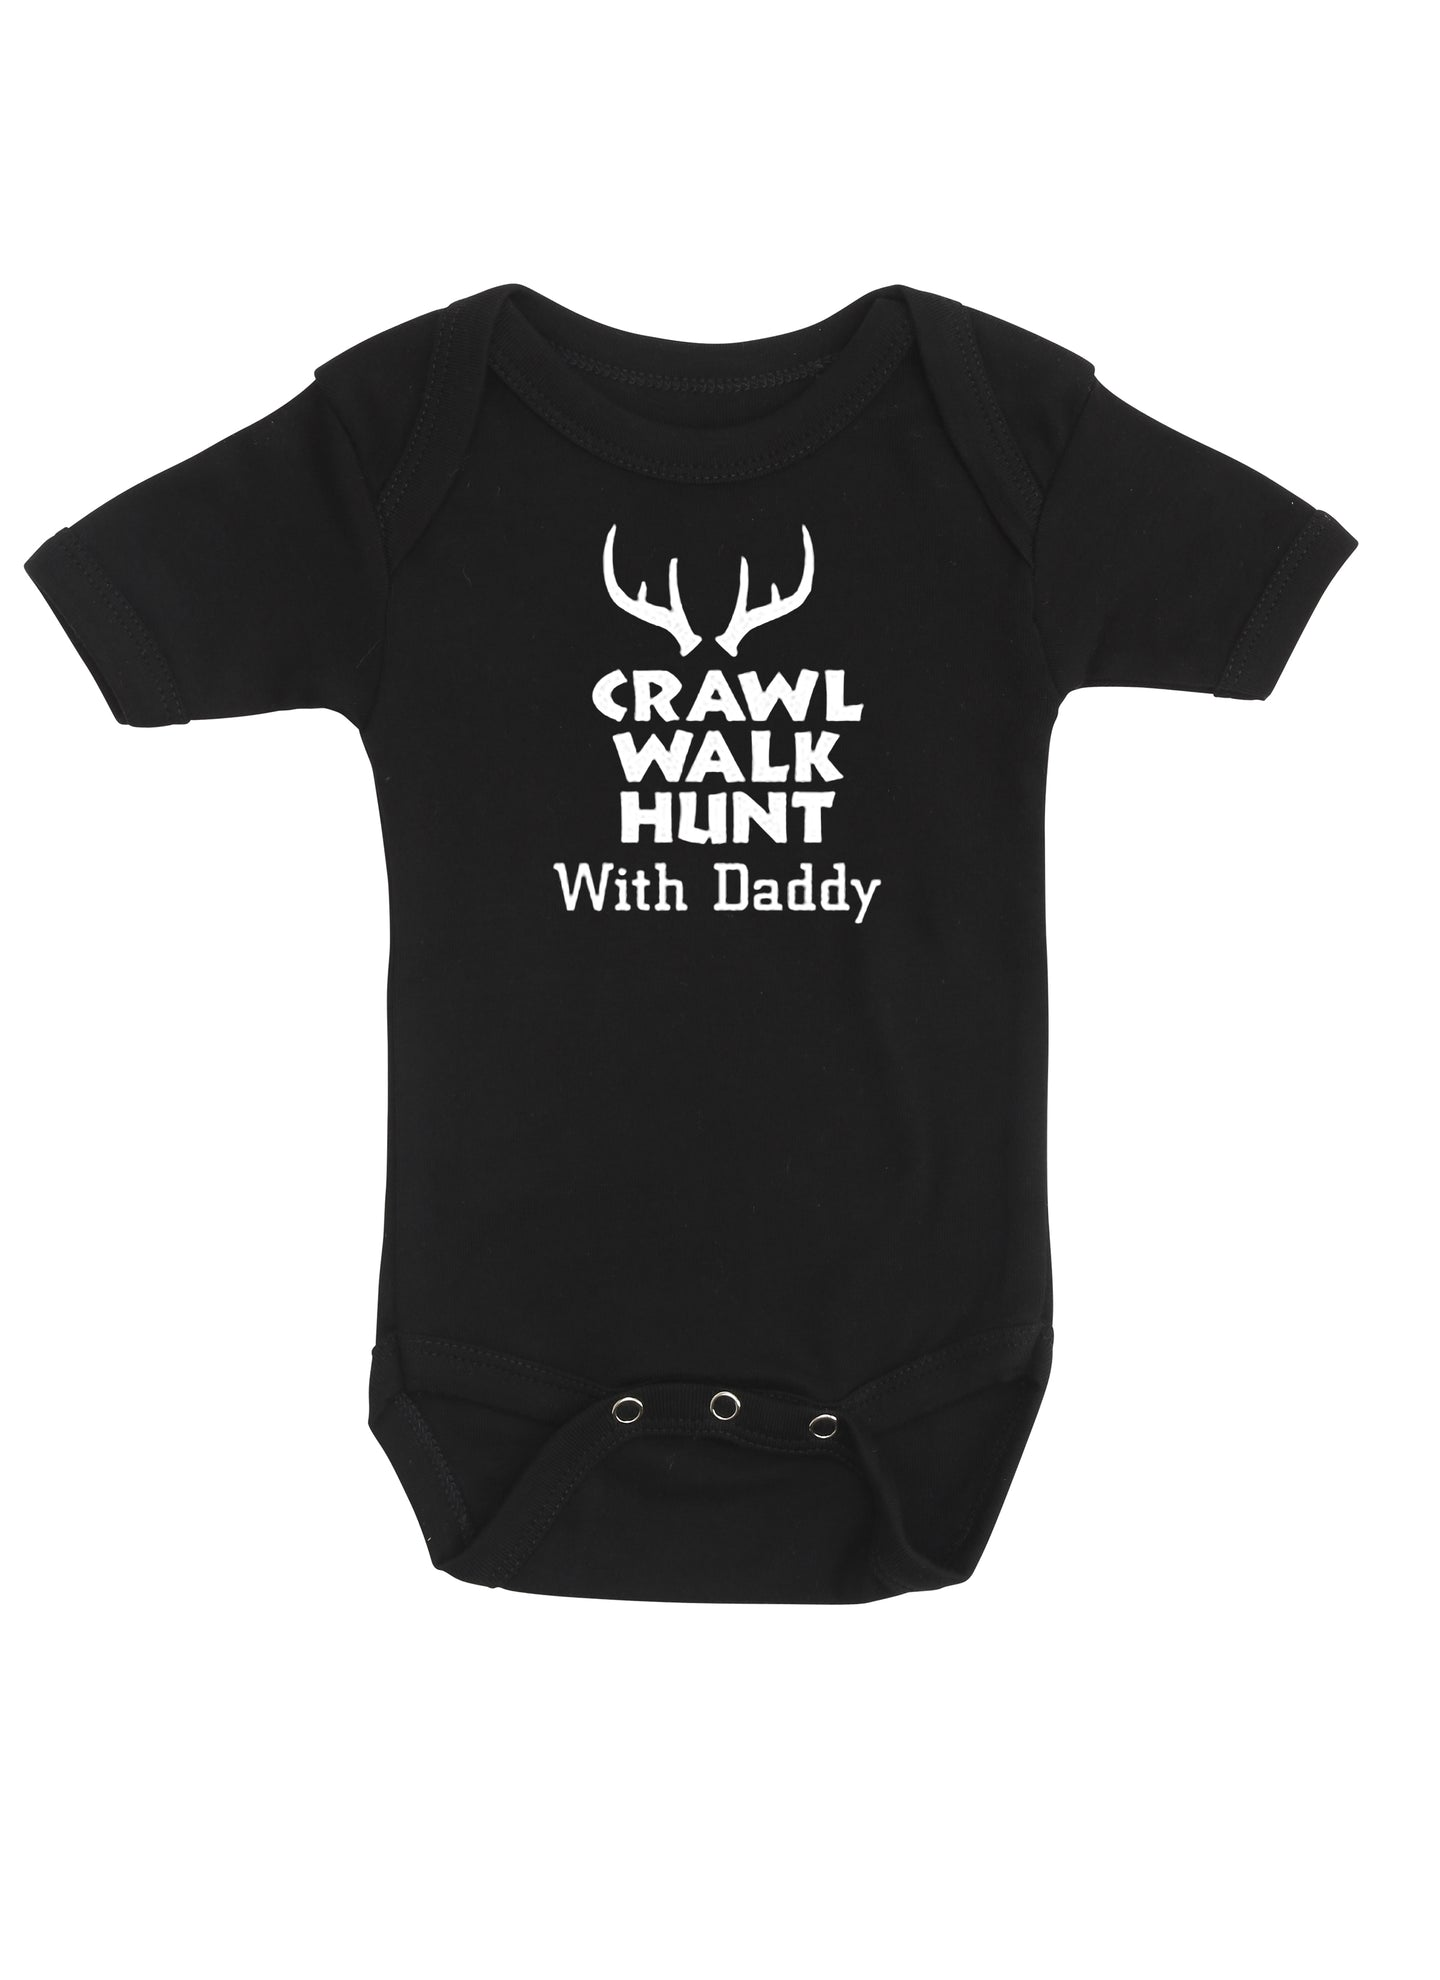 Crawl, walk, hunt with Daddy